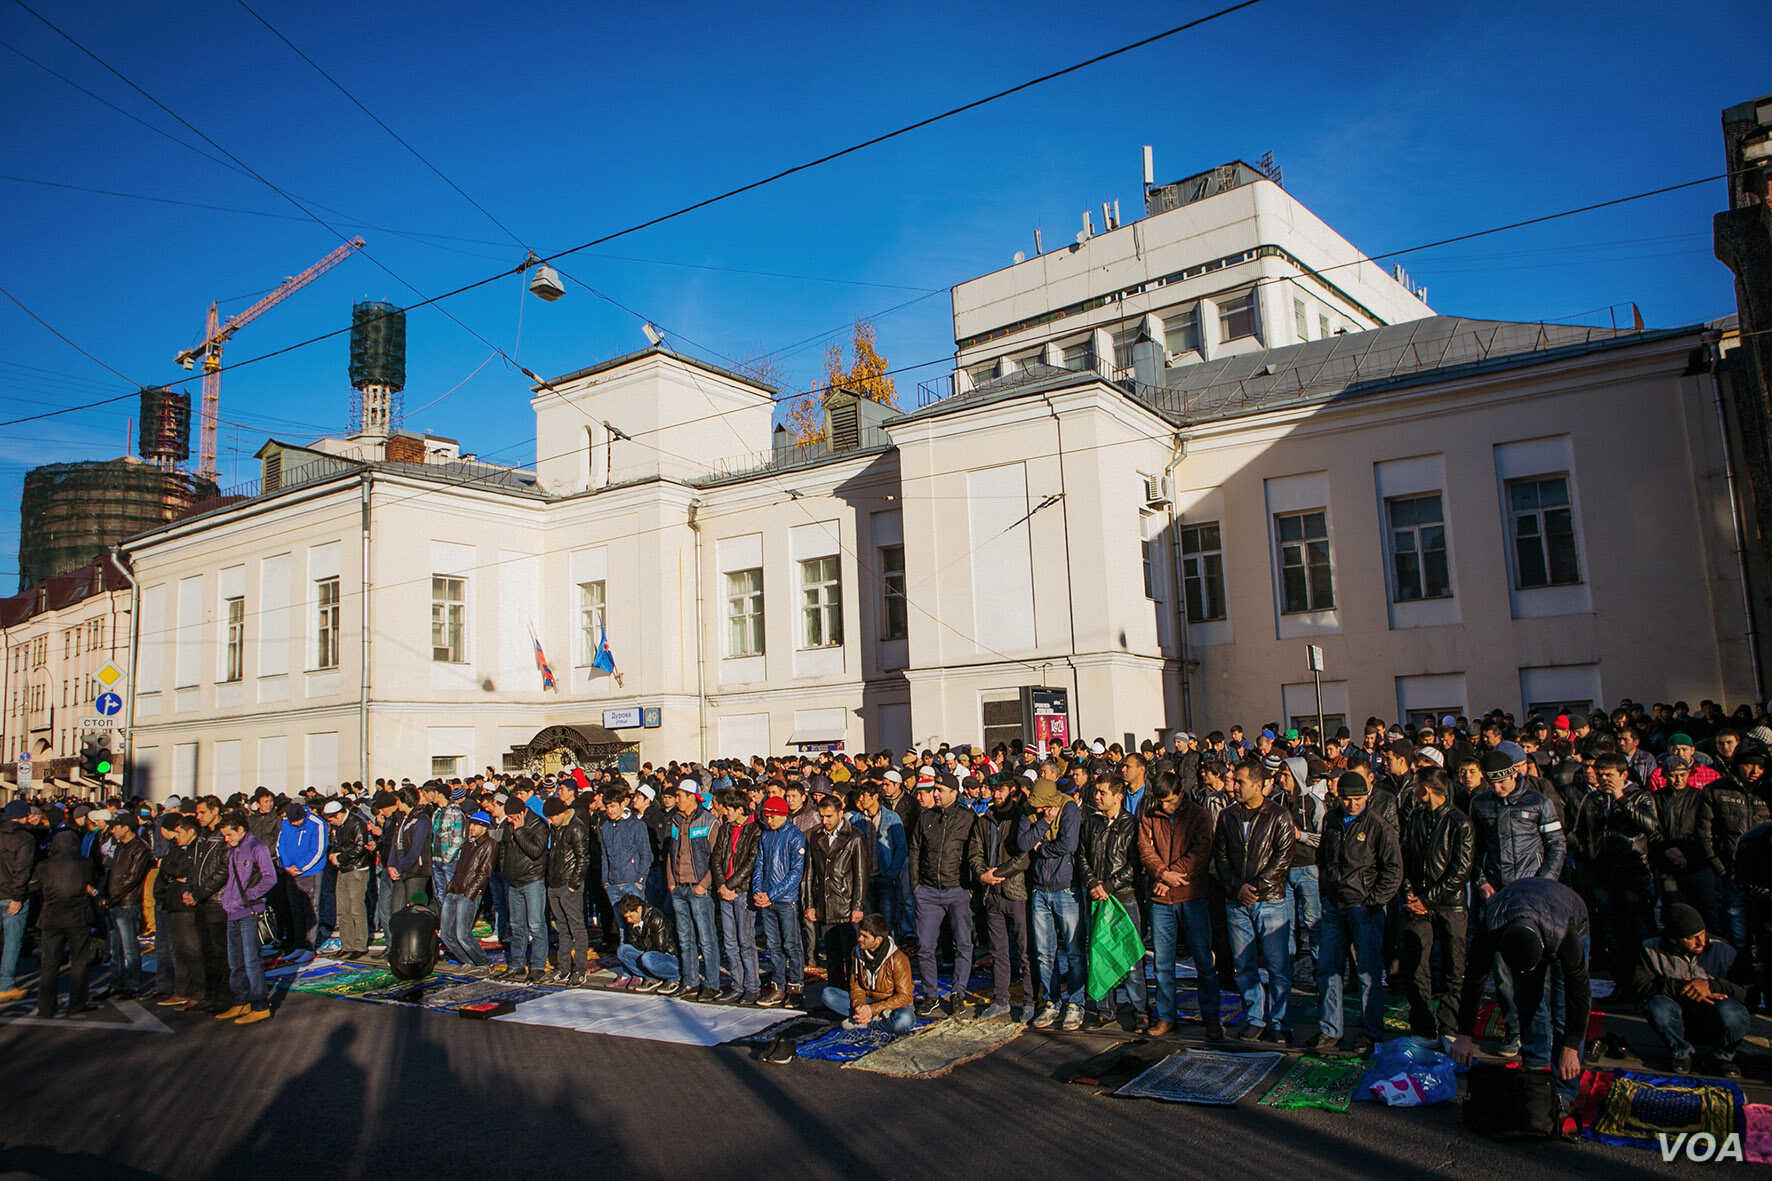 Moscow has one mosque for 500,000 Muslims. On religious holidays, like Eid Al-Adha, tens of thousands of faithful pray in streets specially blocked off near mosques, Moscow, Oct. 15, 2013. (Vera Undritz for VOA)